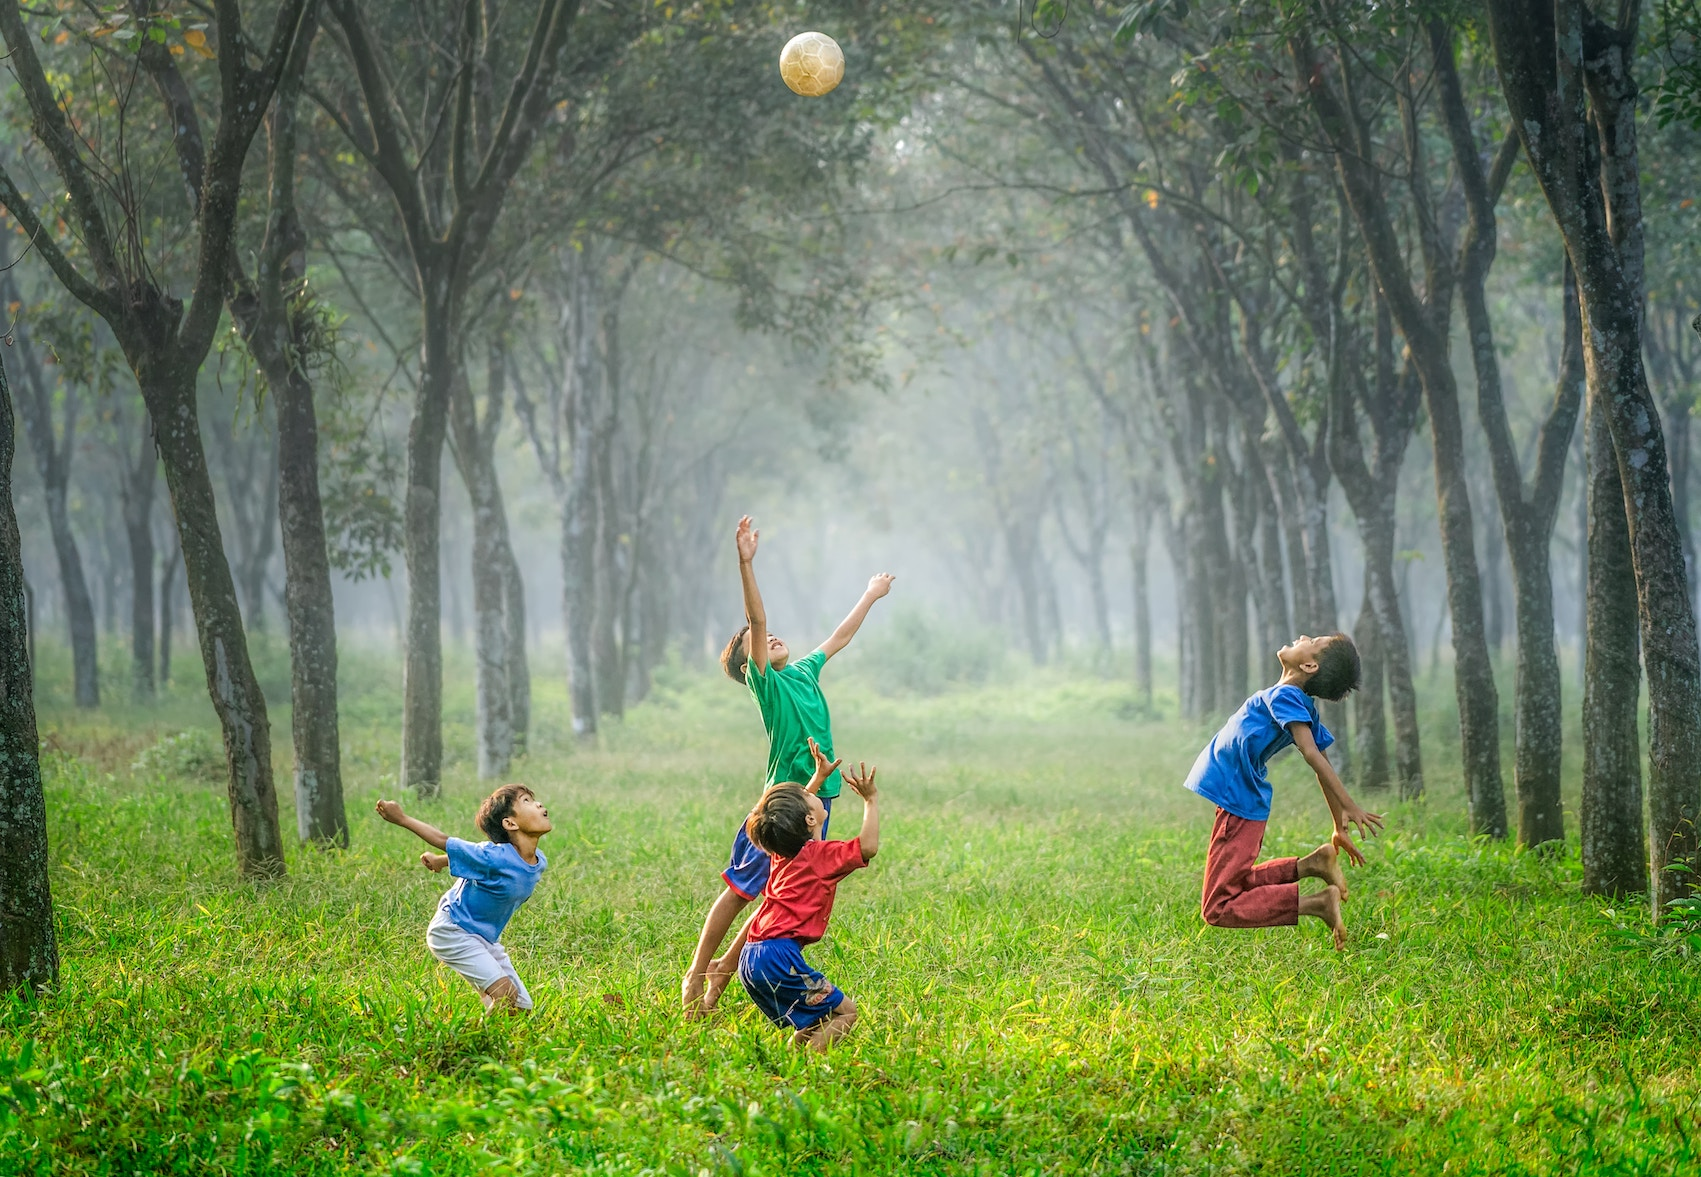 inner-child-retreat-hoi-an-vietnam.jpg